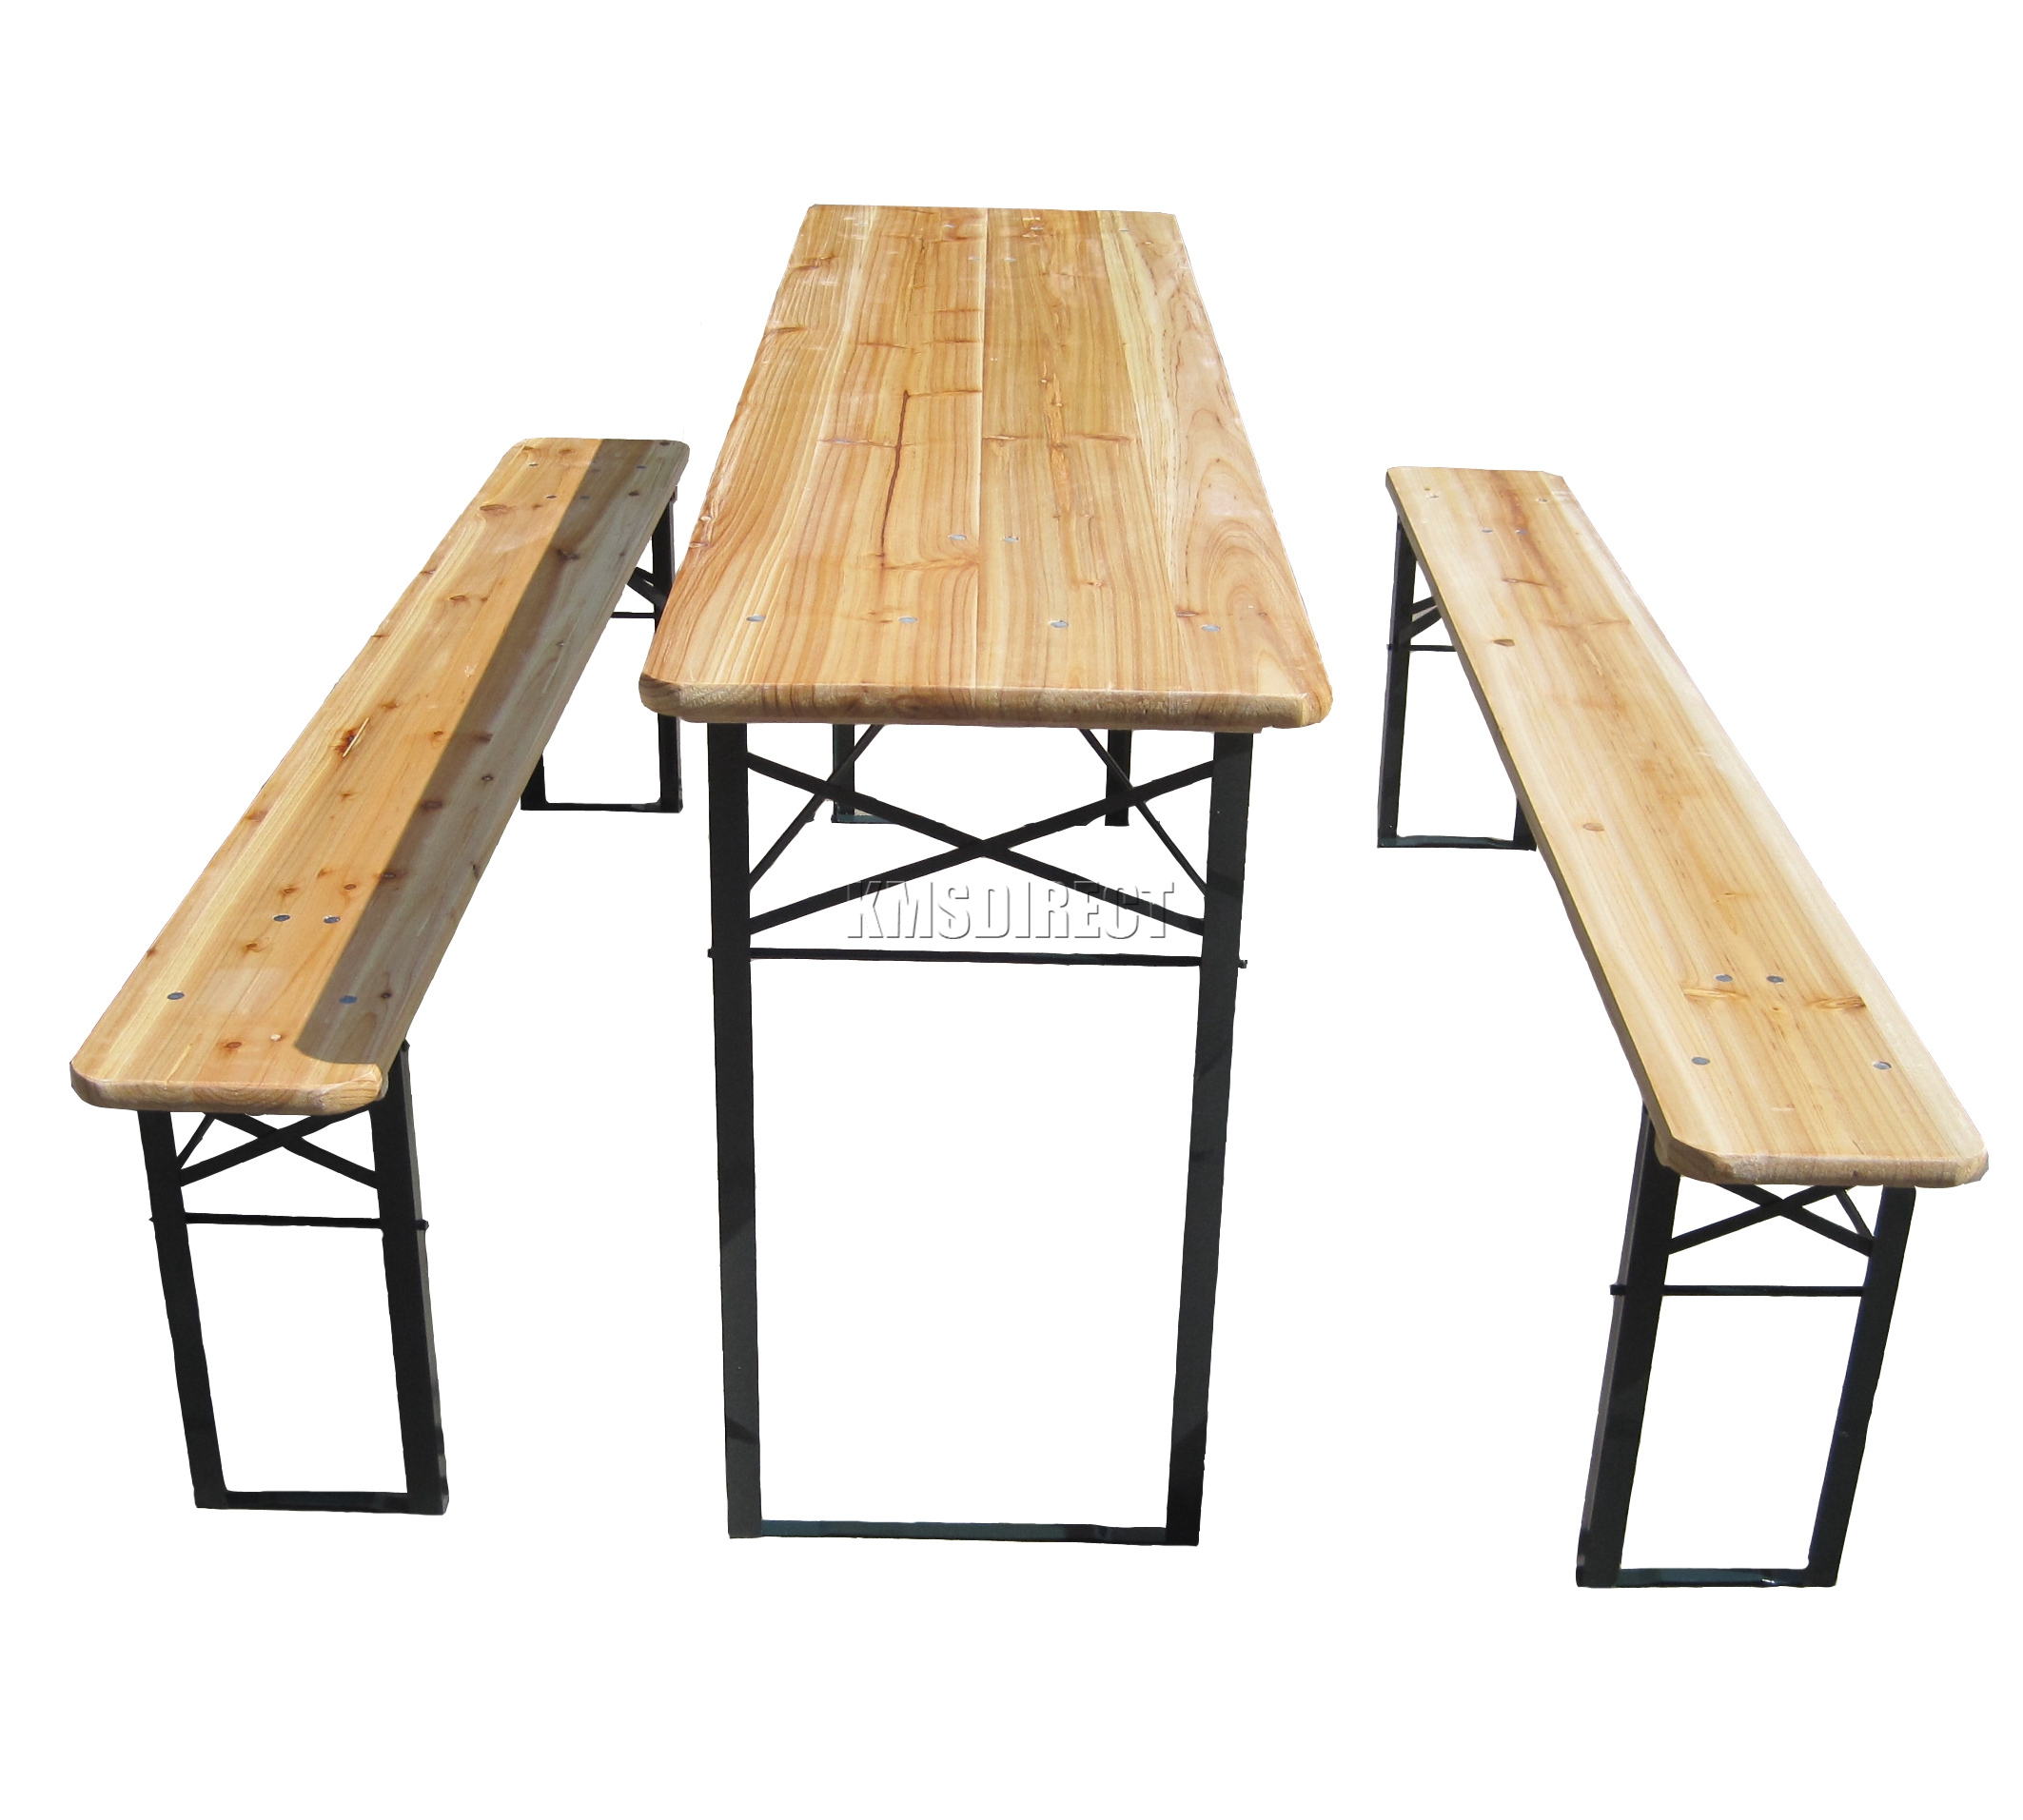 Westwood Outdoor Wooden Folding Beer Table Bench Set